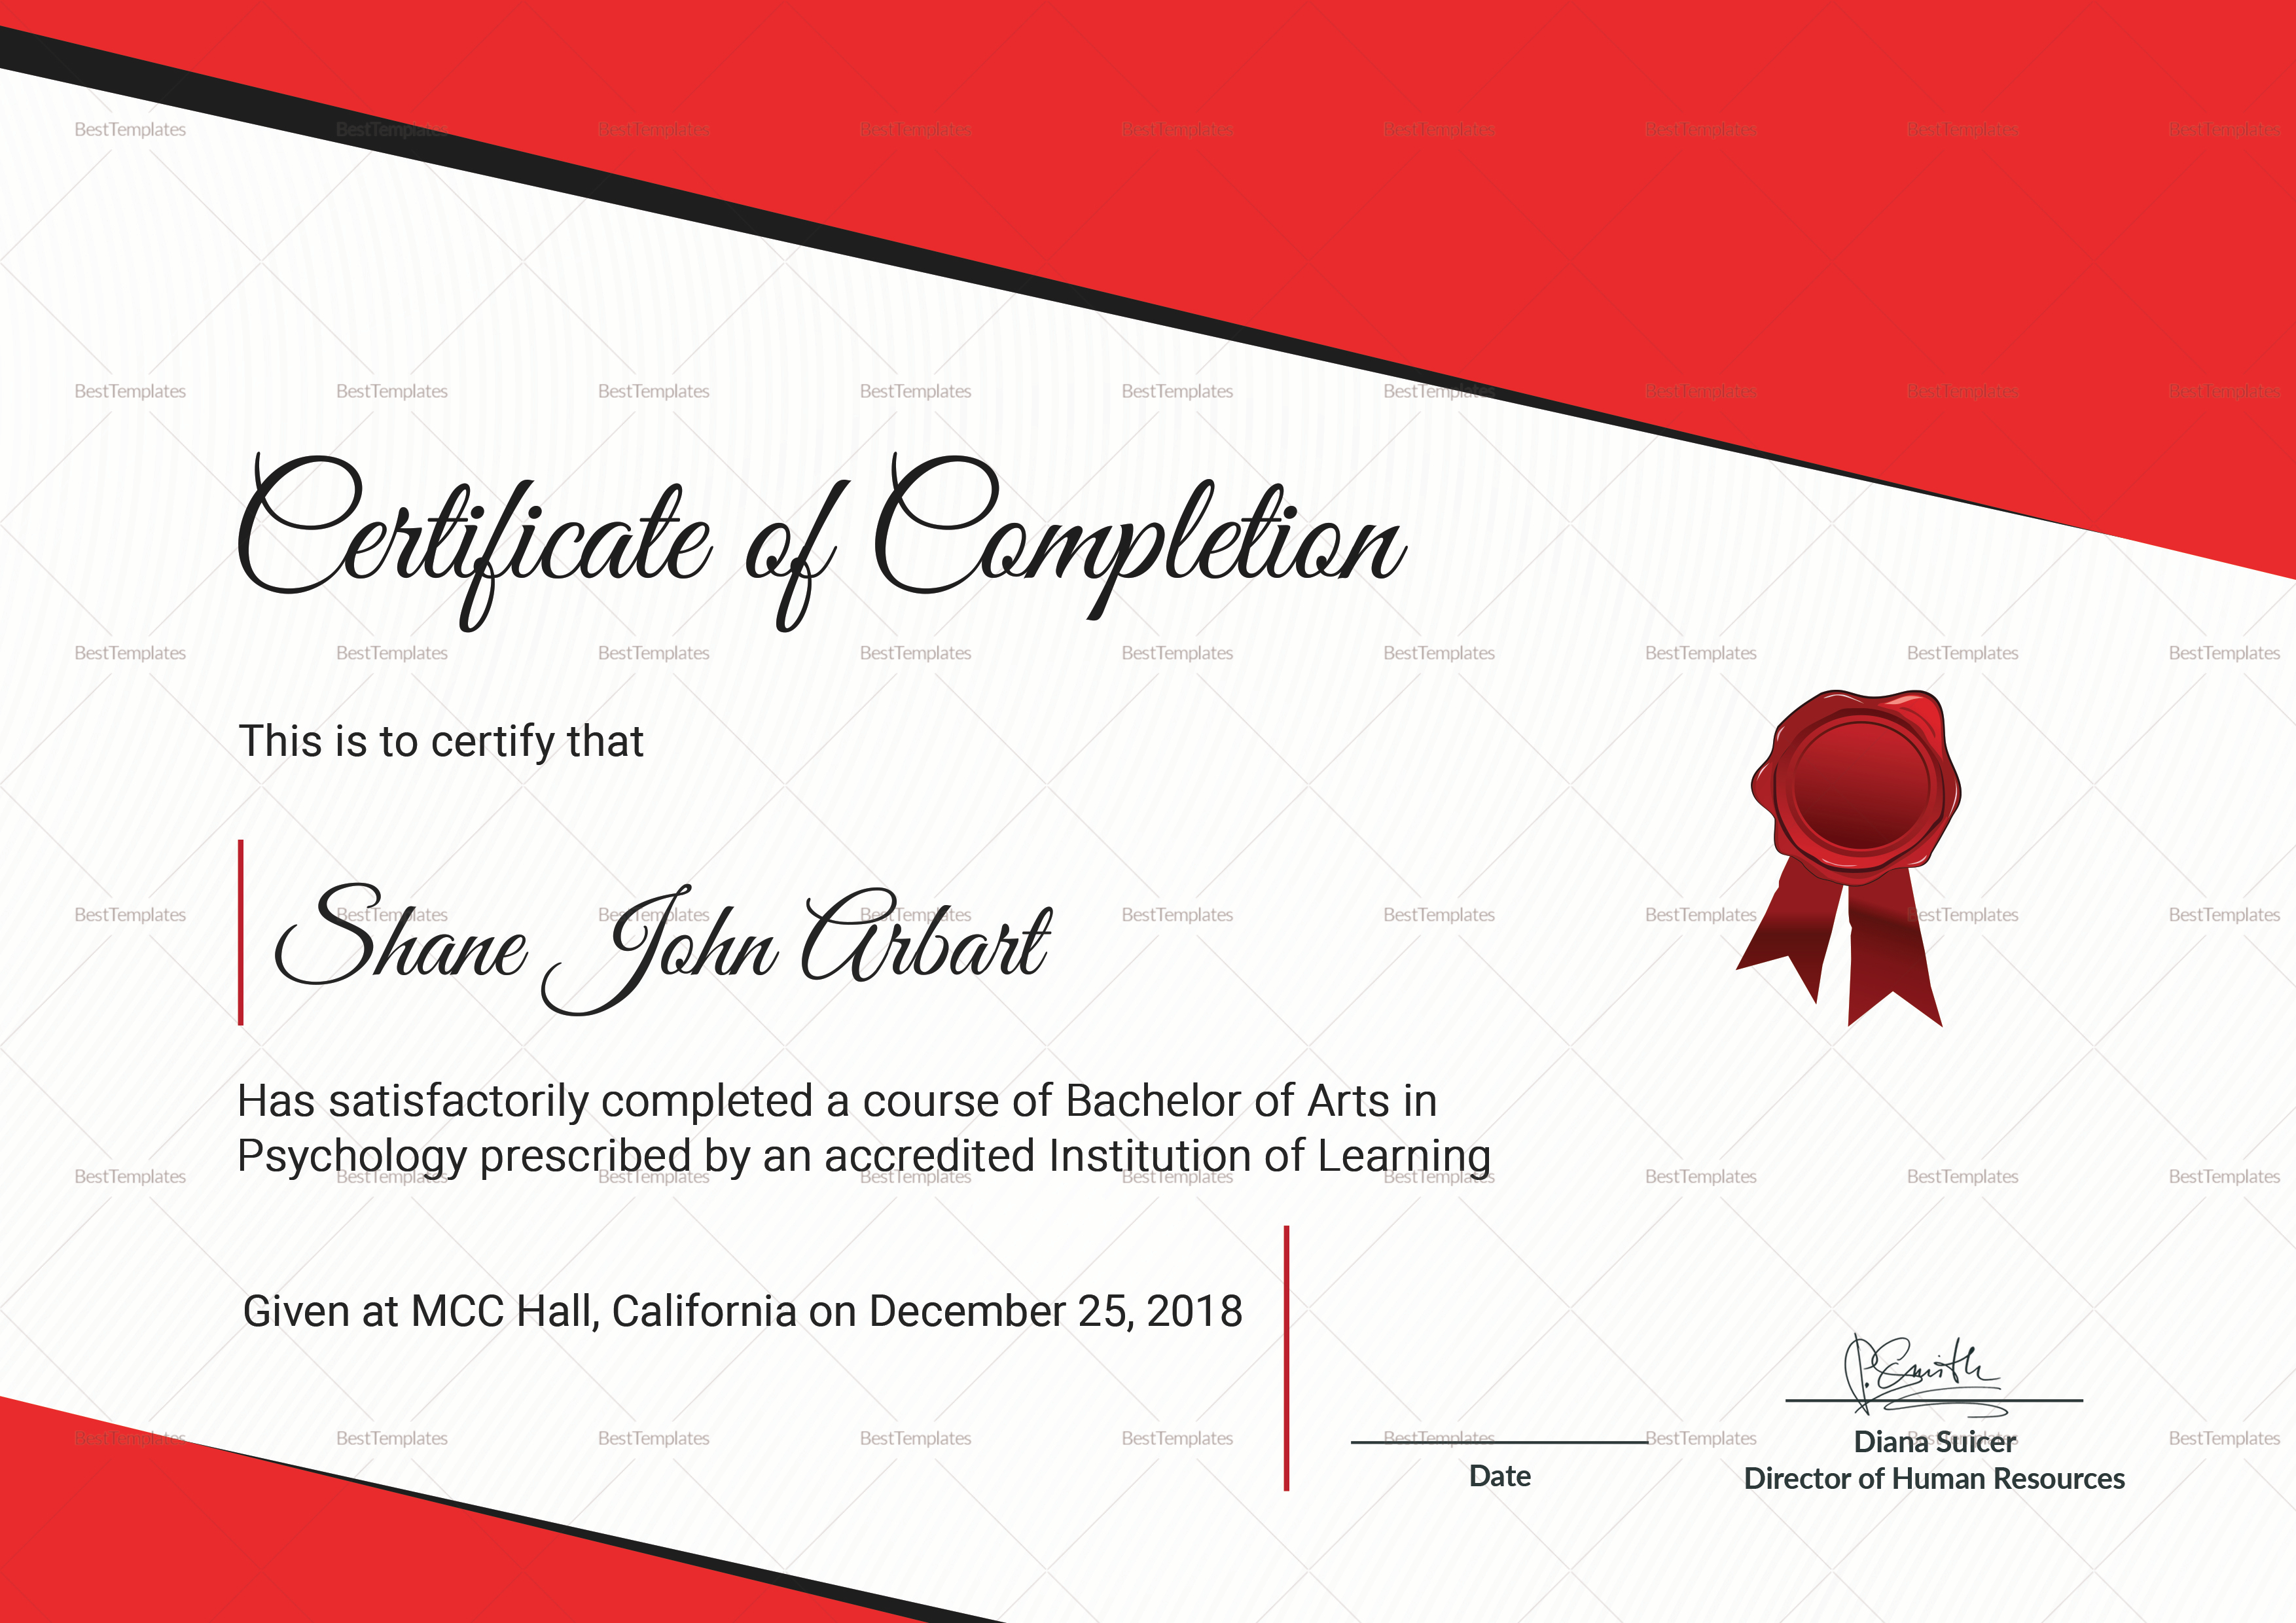 Bachelor of Arts Completion Certificate Template